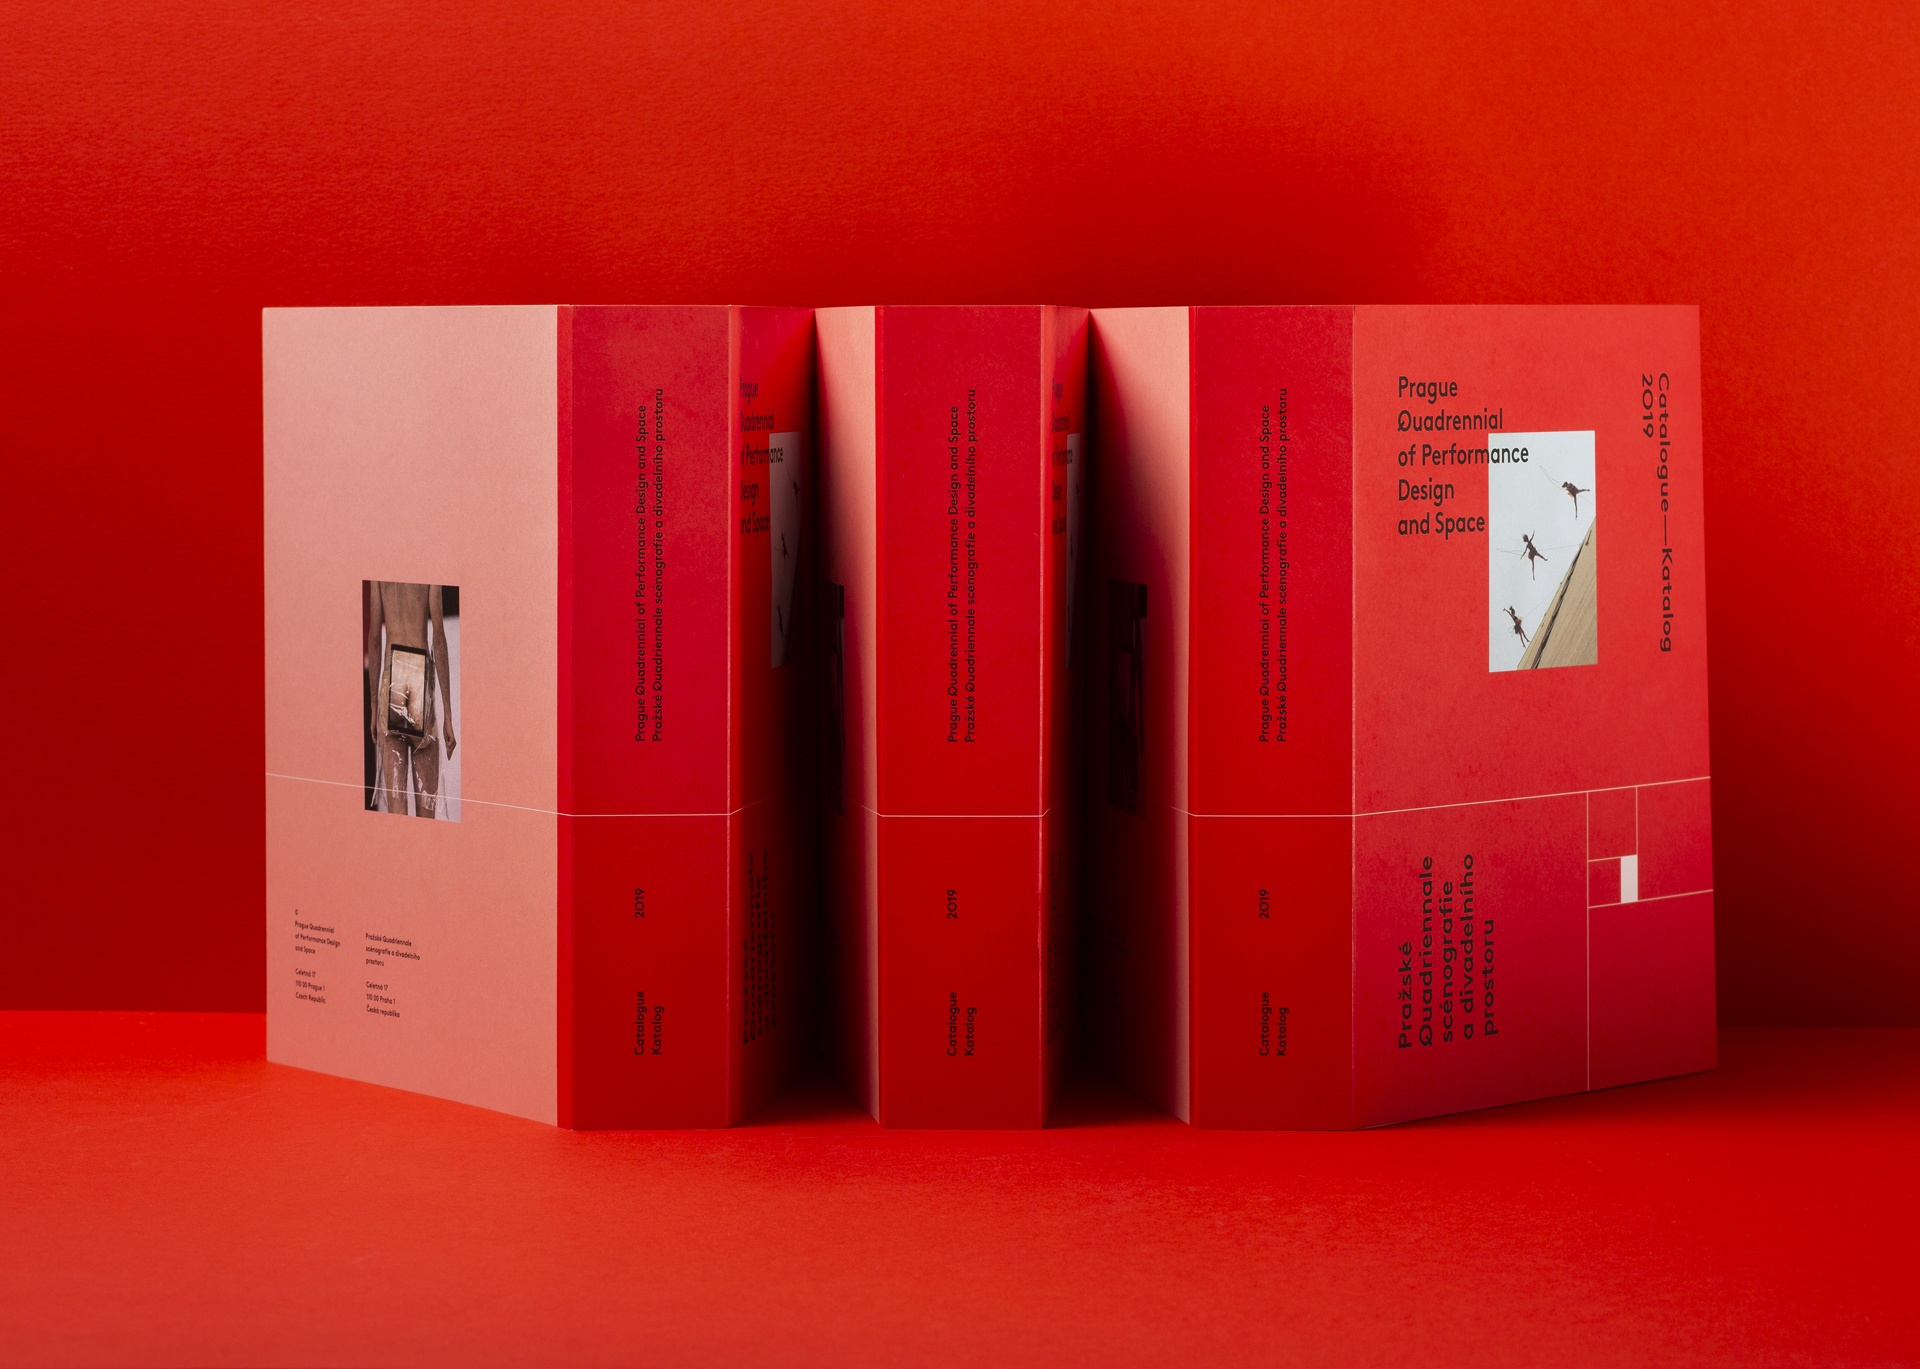 prague quadriennale catalogue